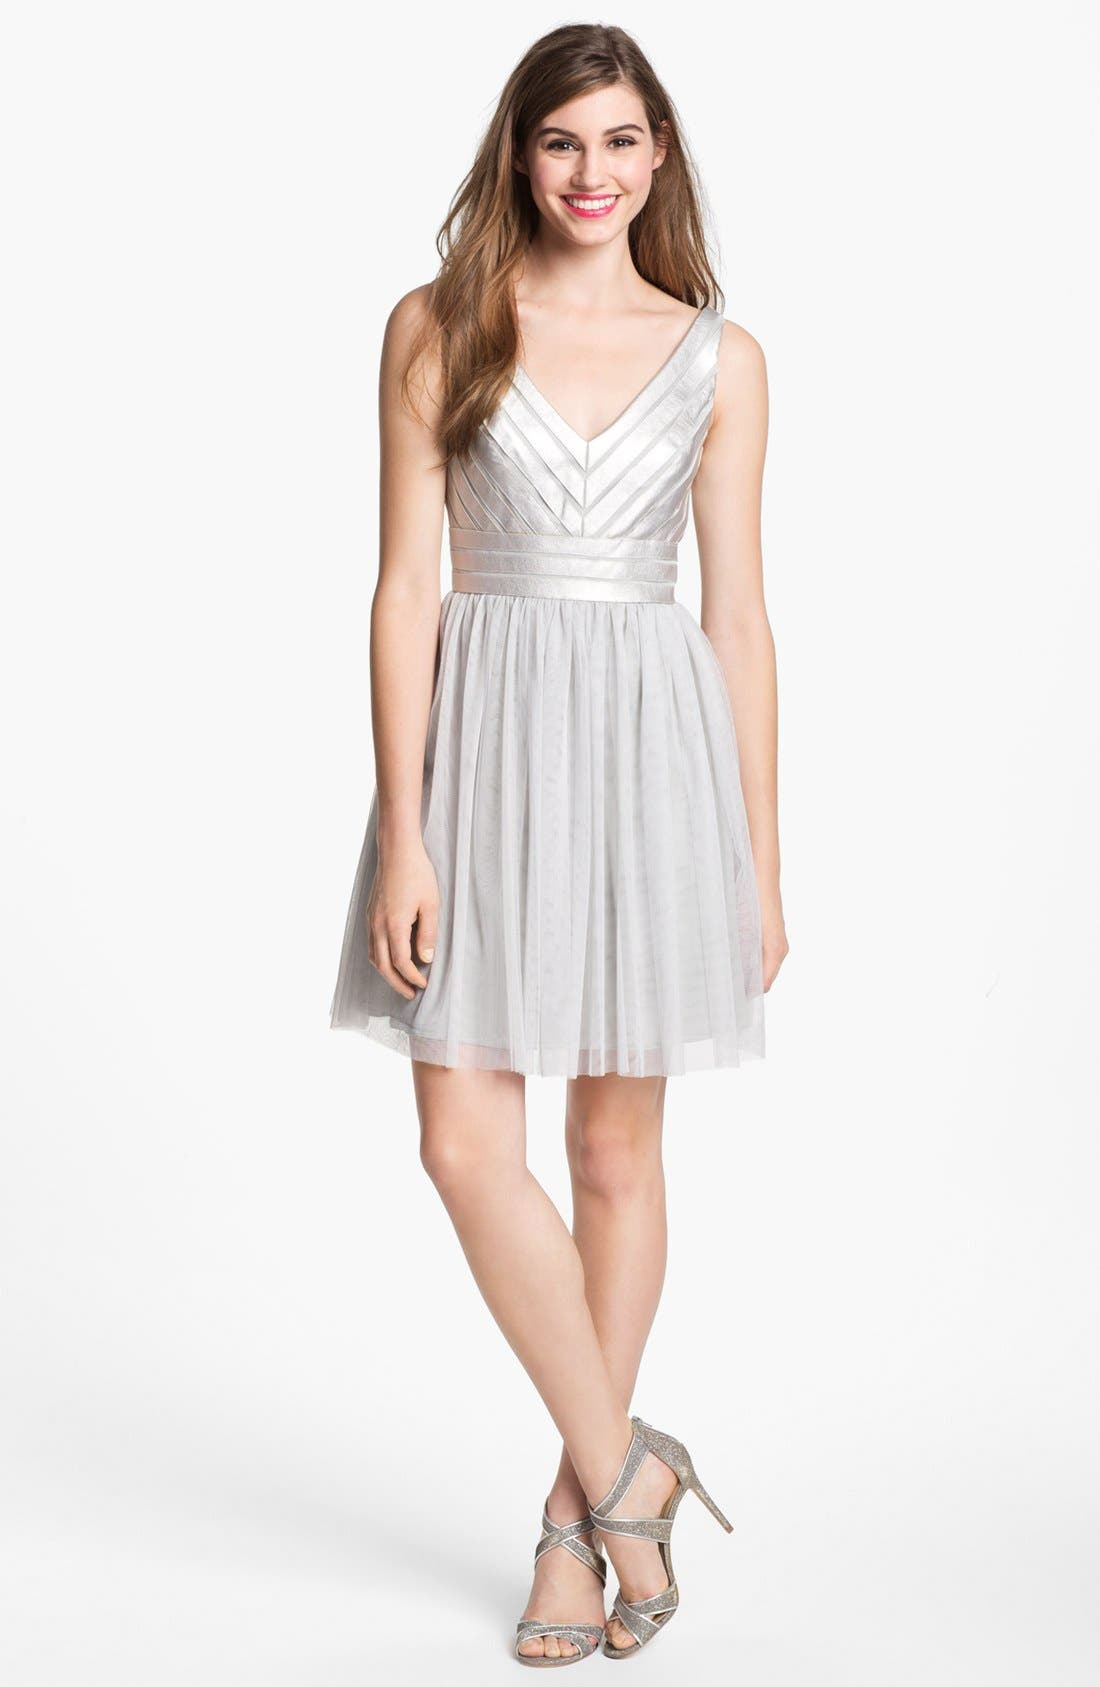 Alternate Image 1 Selected - Aidan Mattox Embellished Tulle Fit & Flare Dress (Online Only)